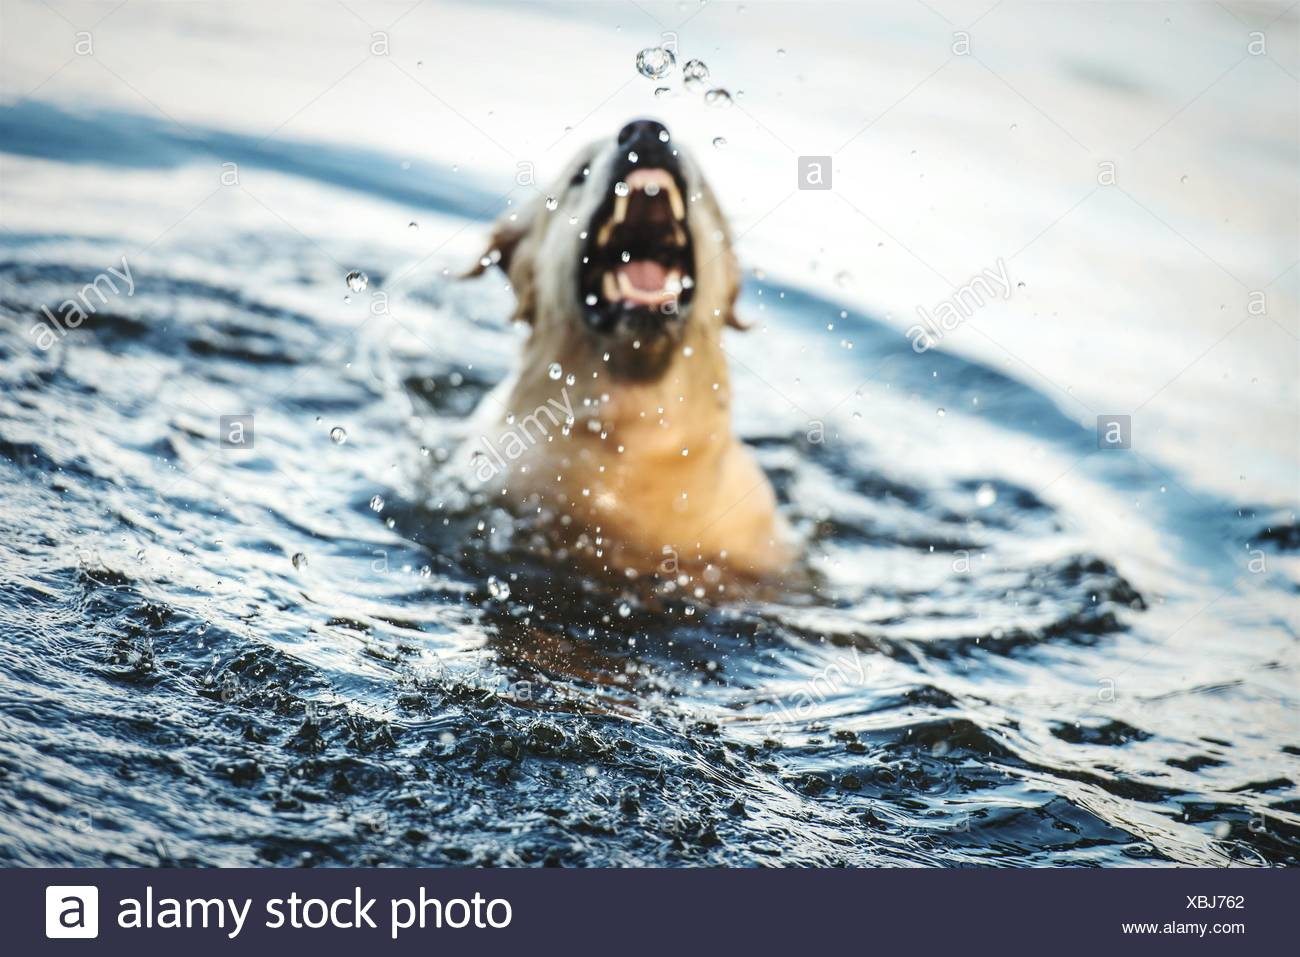 Dog Swimming In River - Stock Image